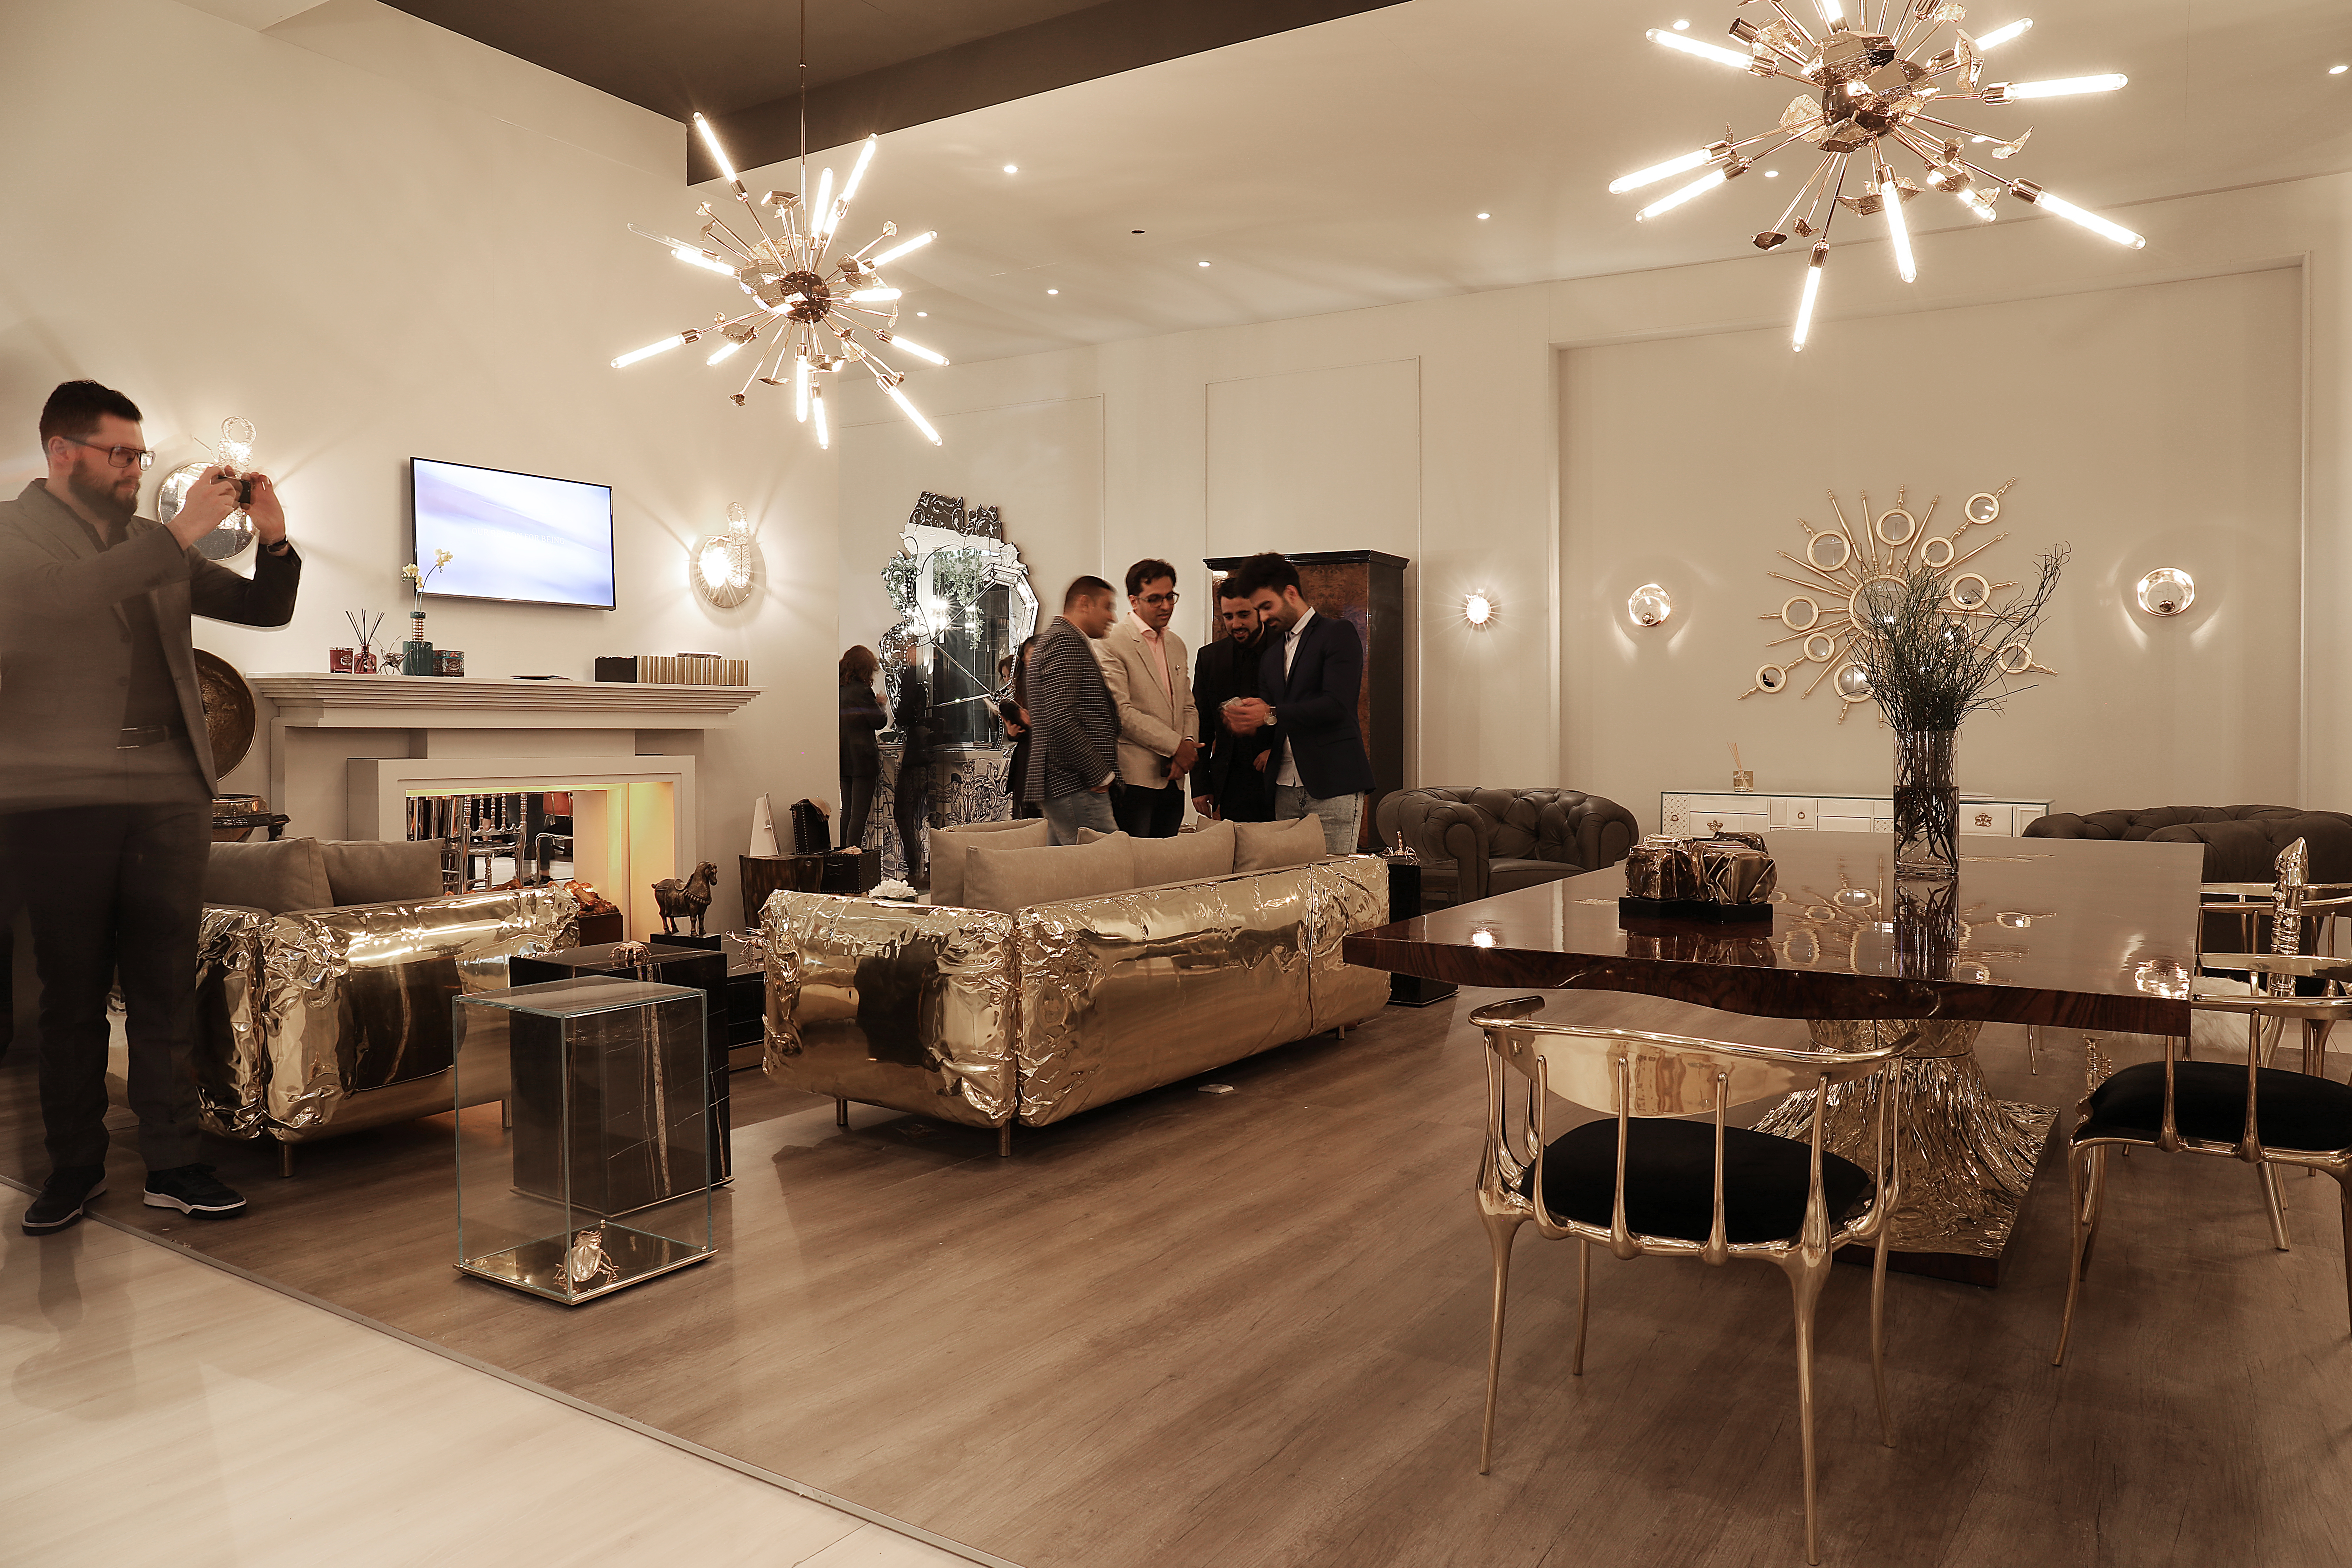 ISaloni 2017 Get to Know the Exclusive Design of Boca Do Lobo isaloni 2017 ISaloni 2017 Get to Know the Exclusive Design of Boca Do Lobo ISaloni 2017 Get to Know the Exclusive Design of Boca Do Lobo 5